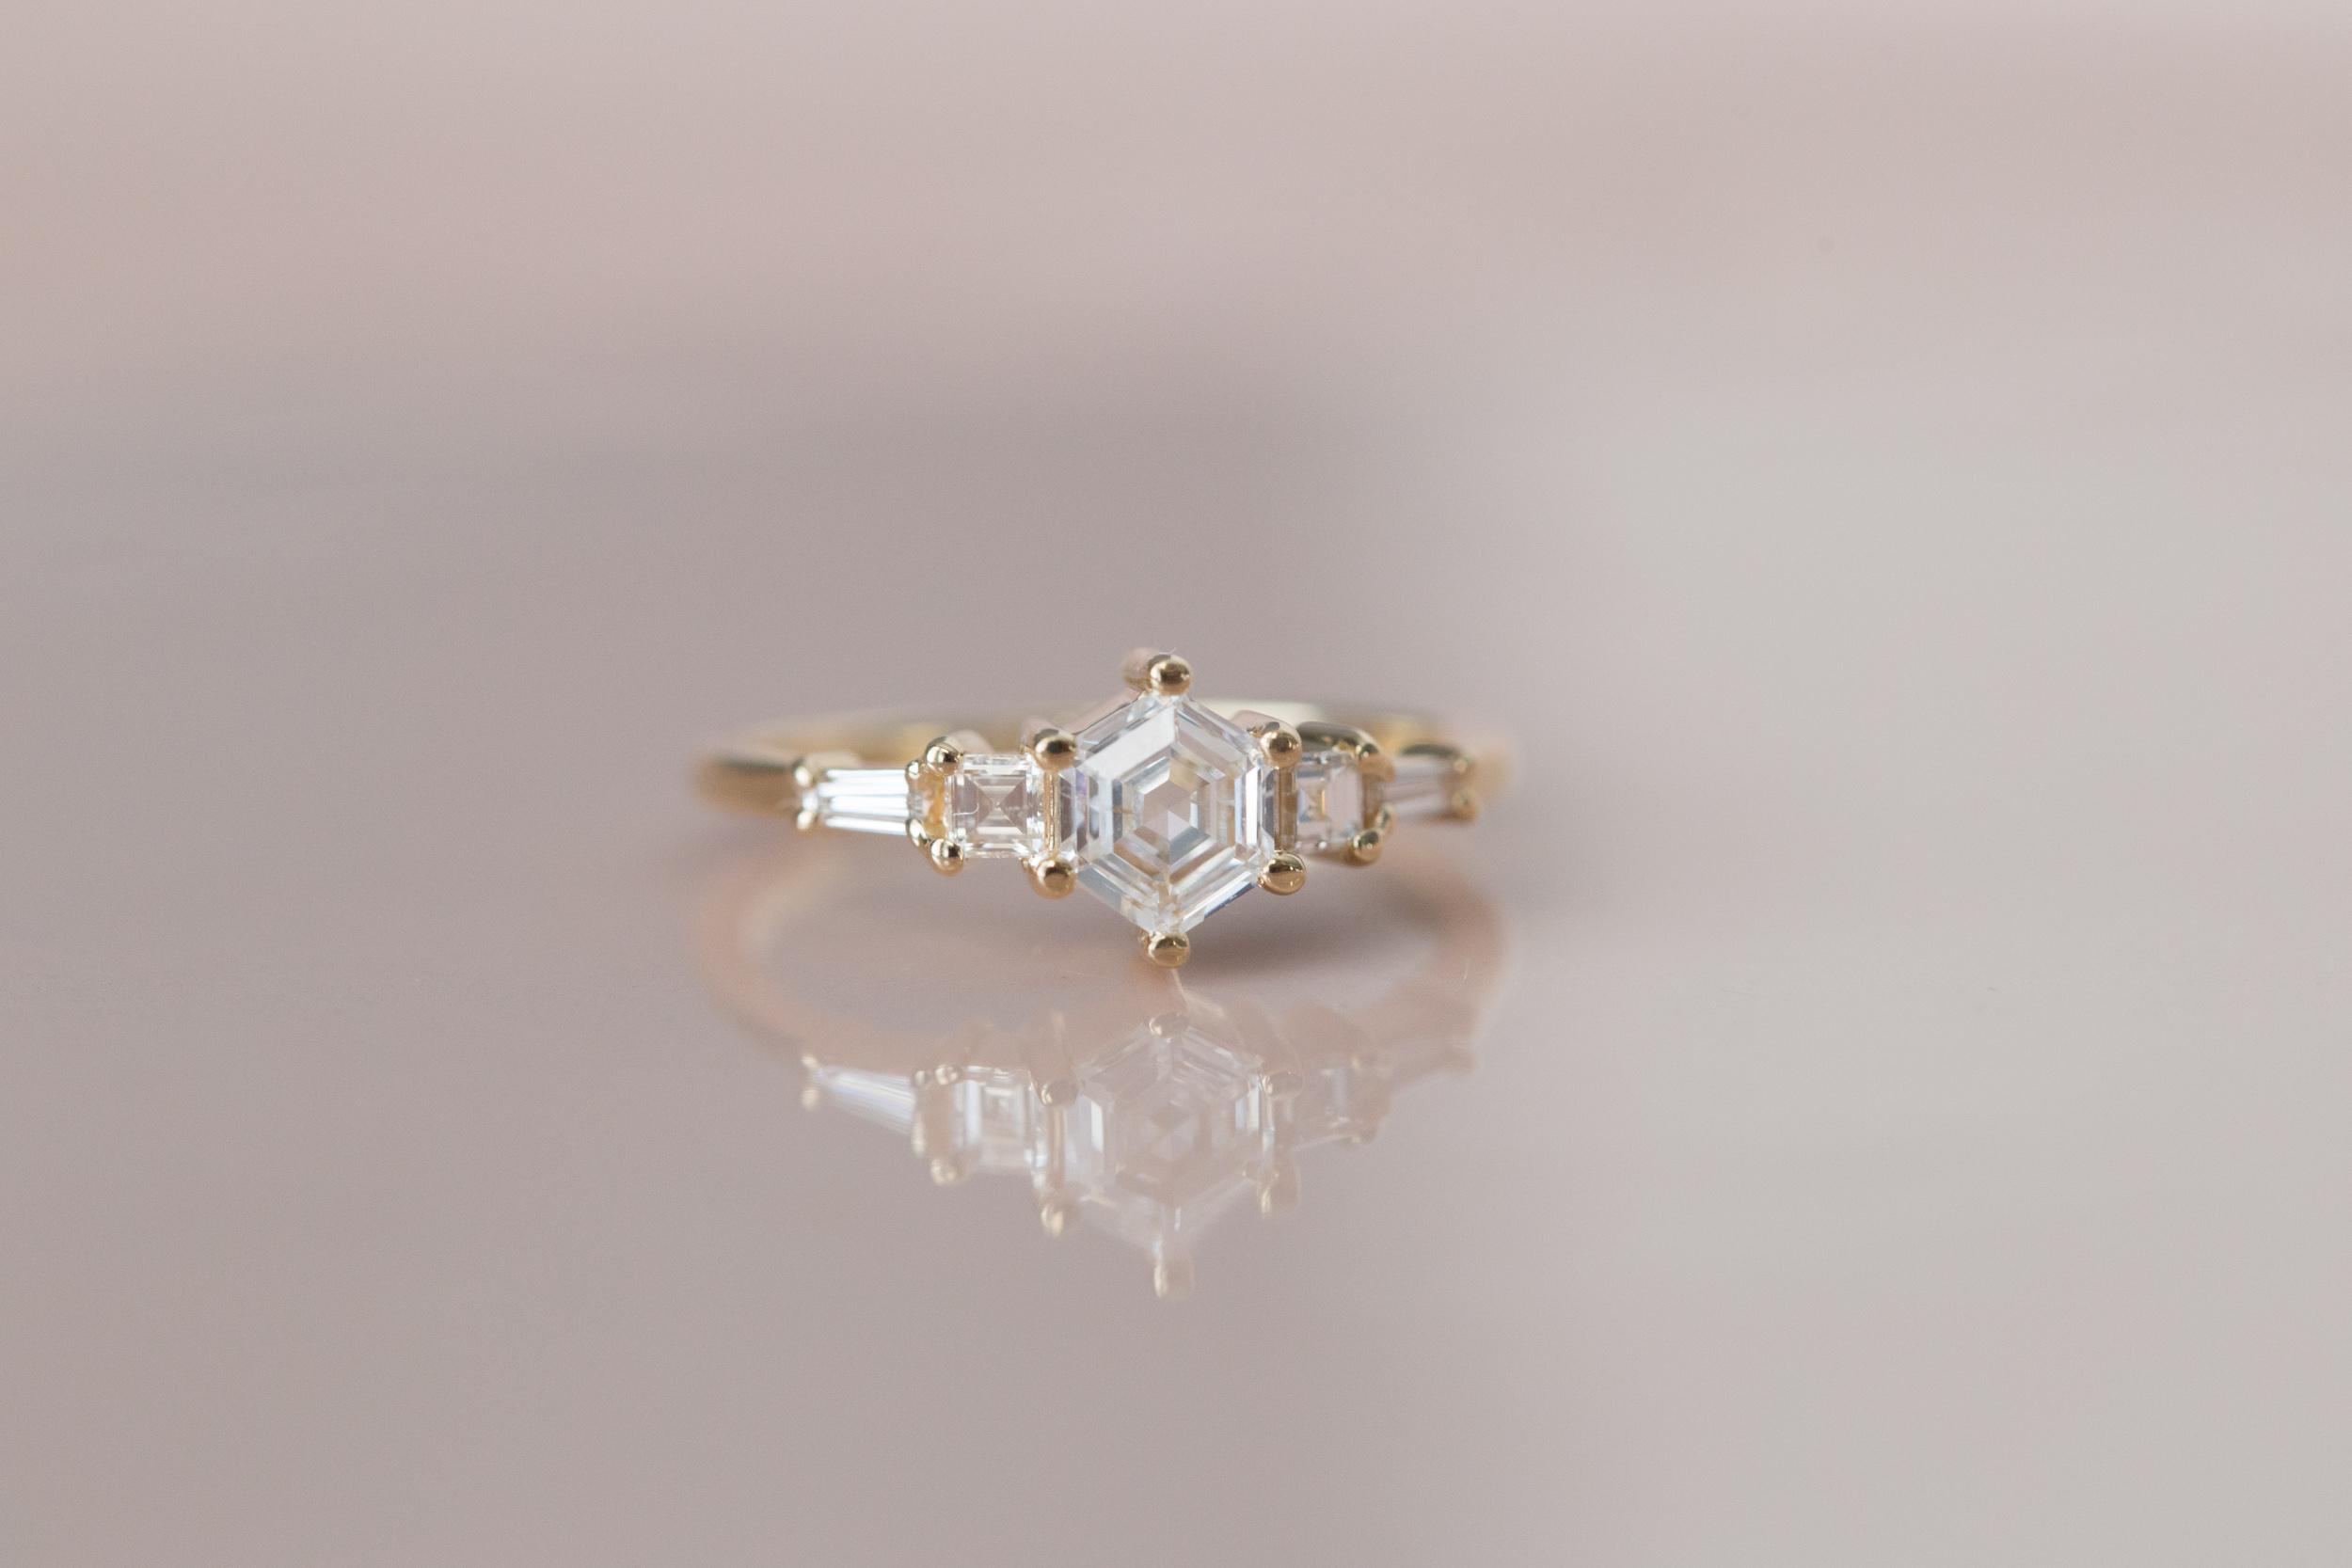 Mara + Dan Hexagon Diamond Step Cut Ring-3.jpg